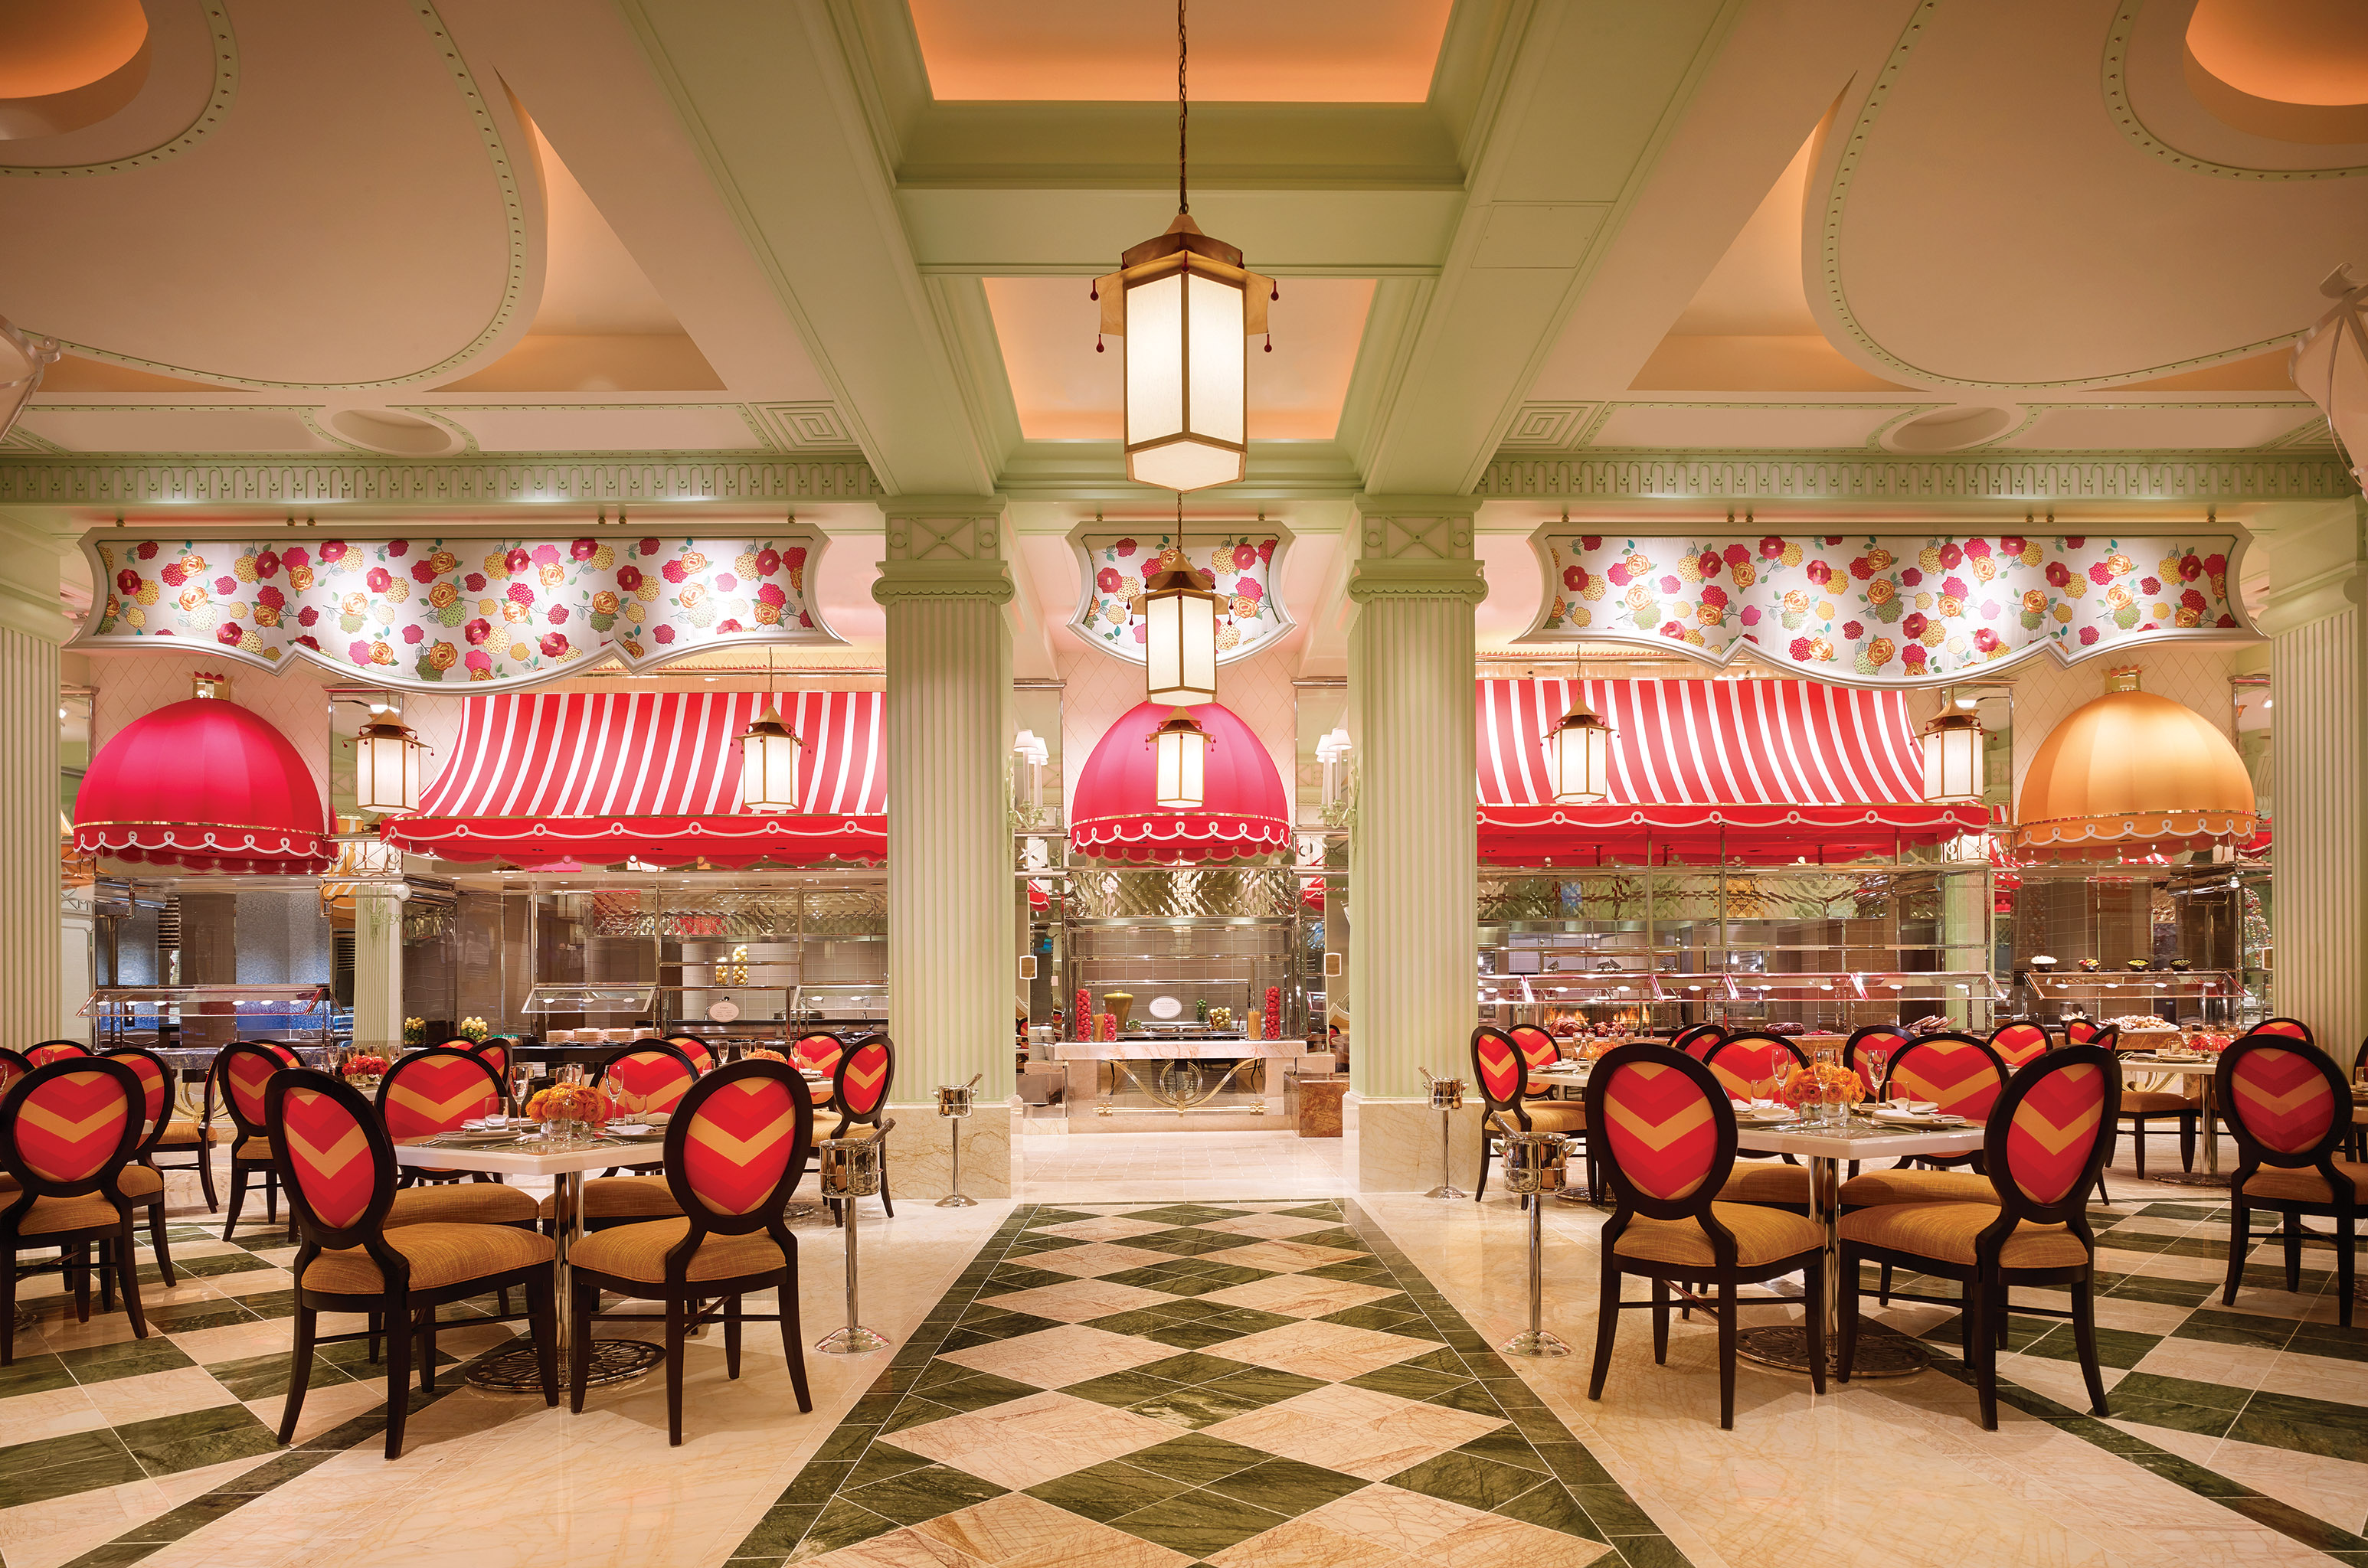 21 Things You Need To Know About The Renovated Buffet At Wynn